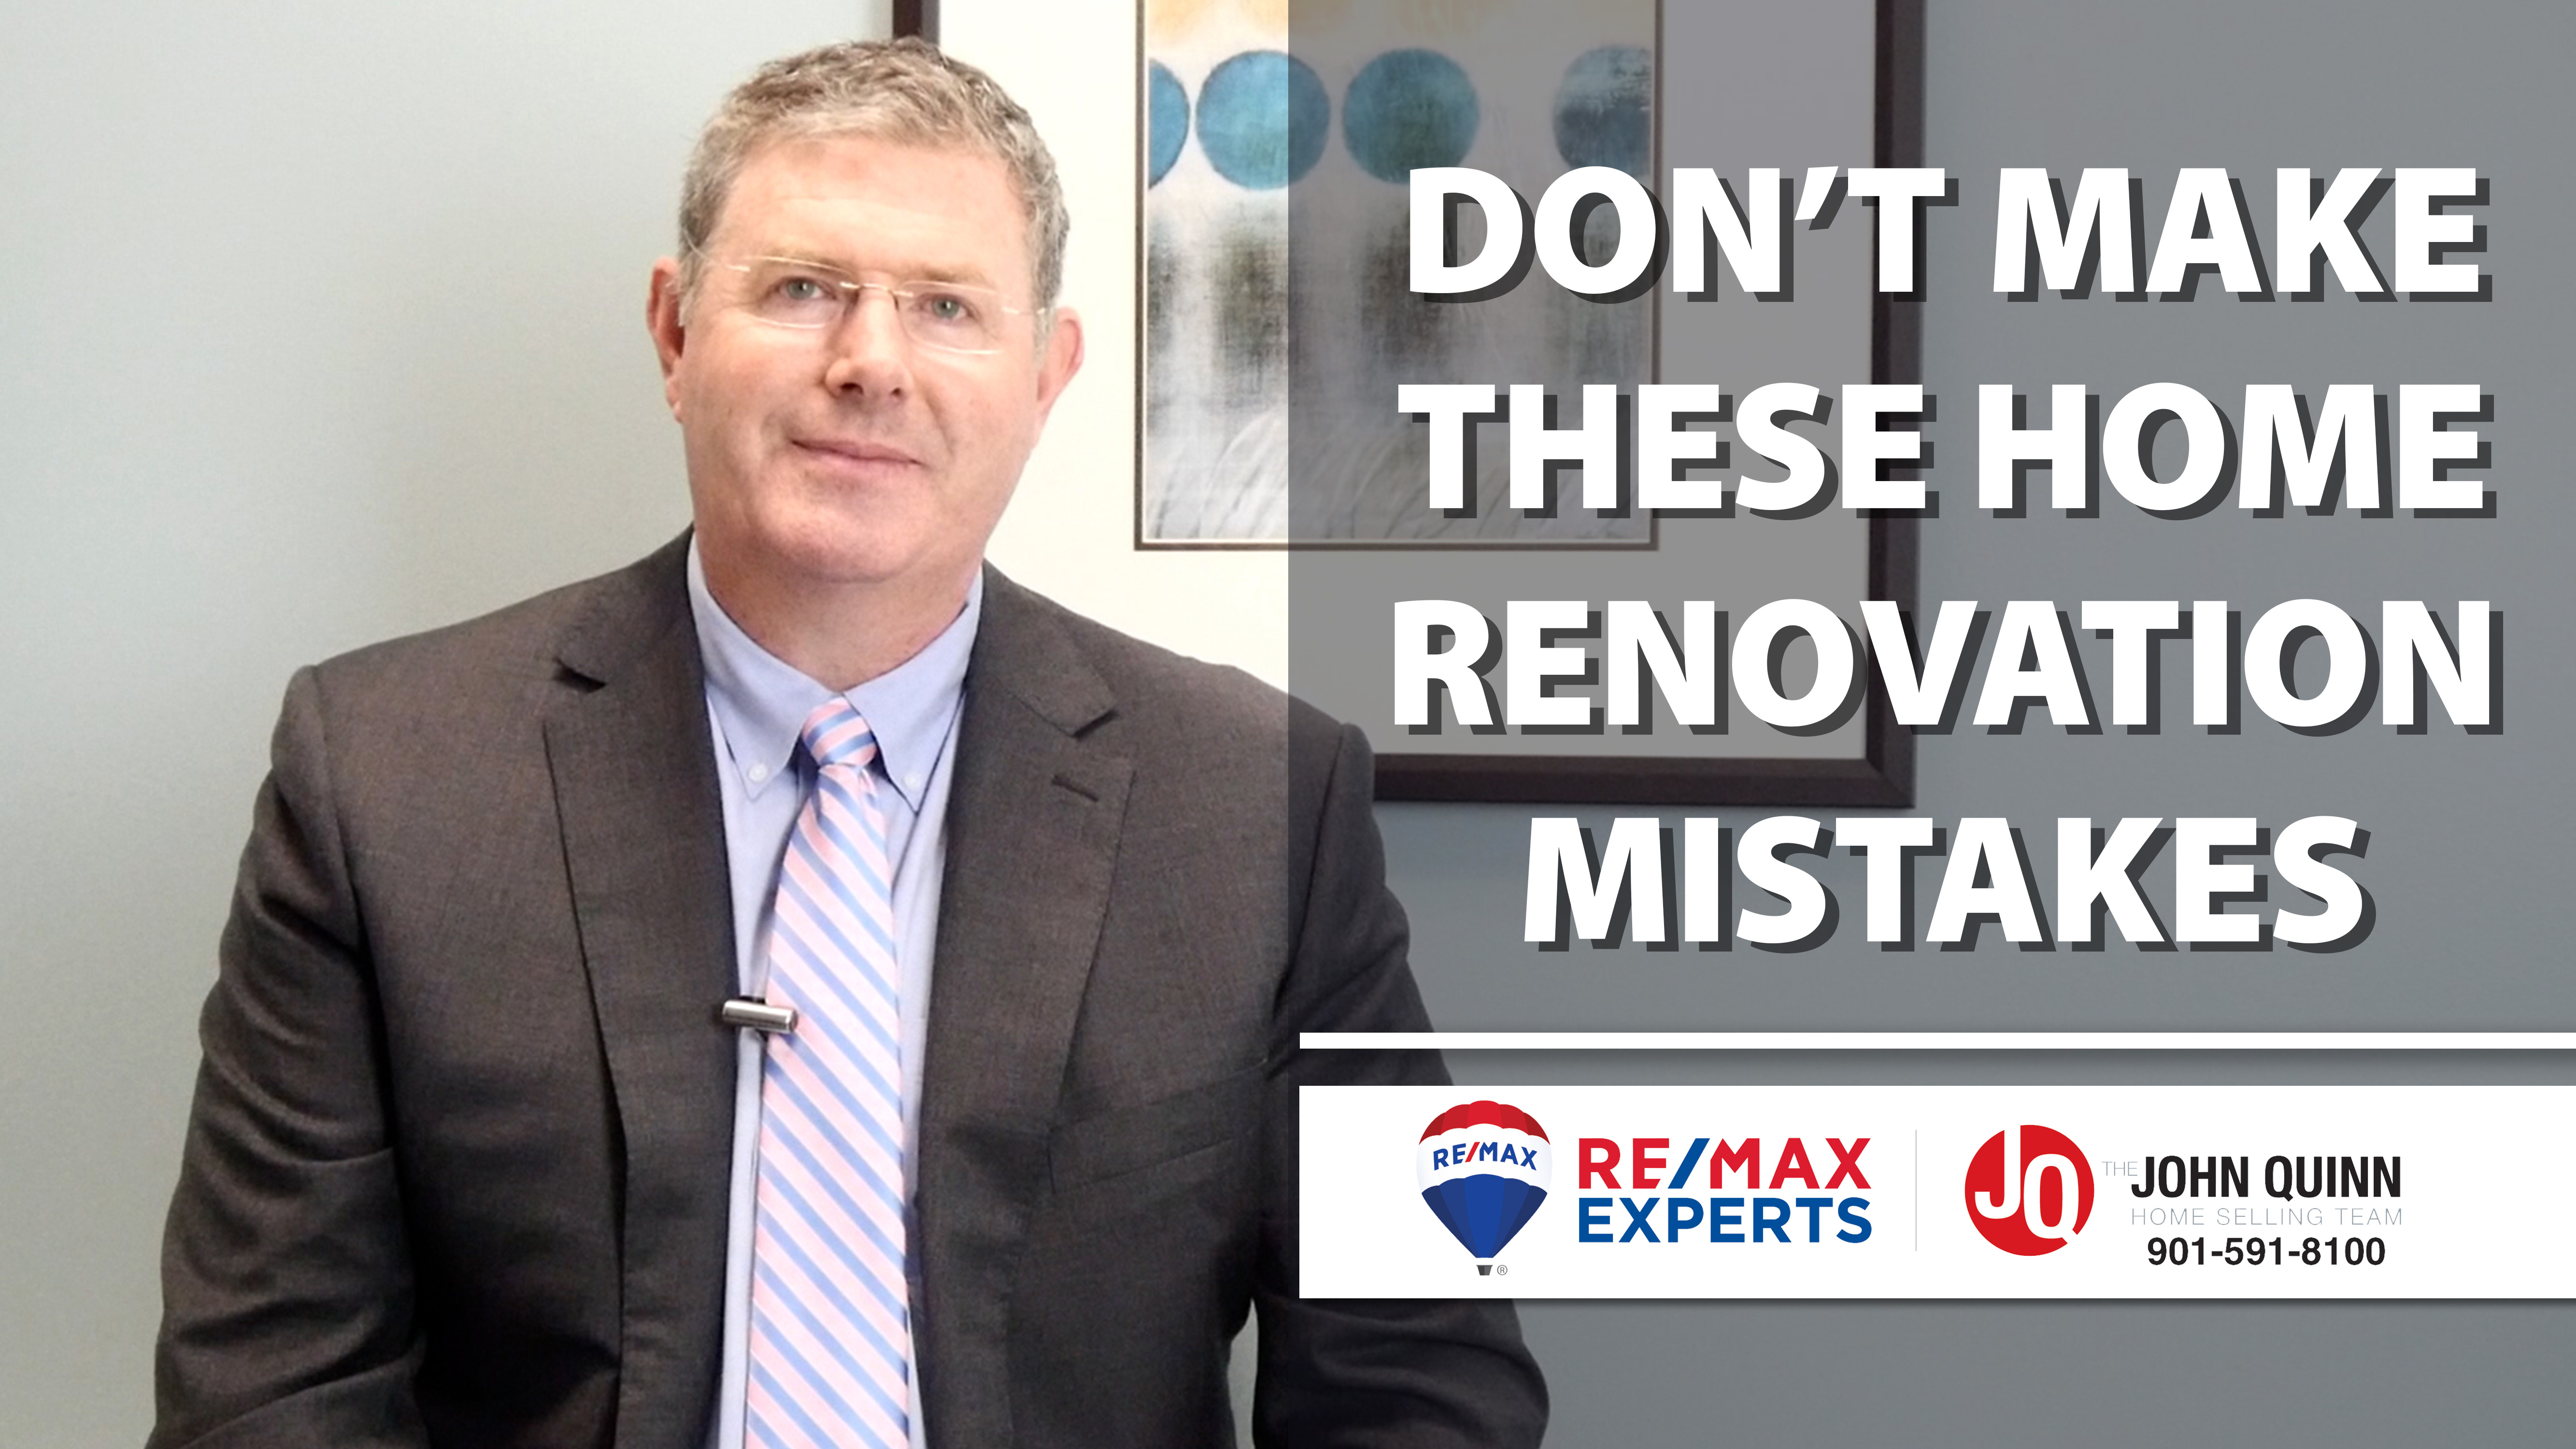 Which Home Renovation Mistakes Must You Avoid?